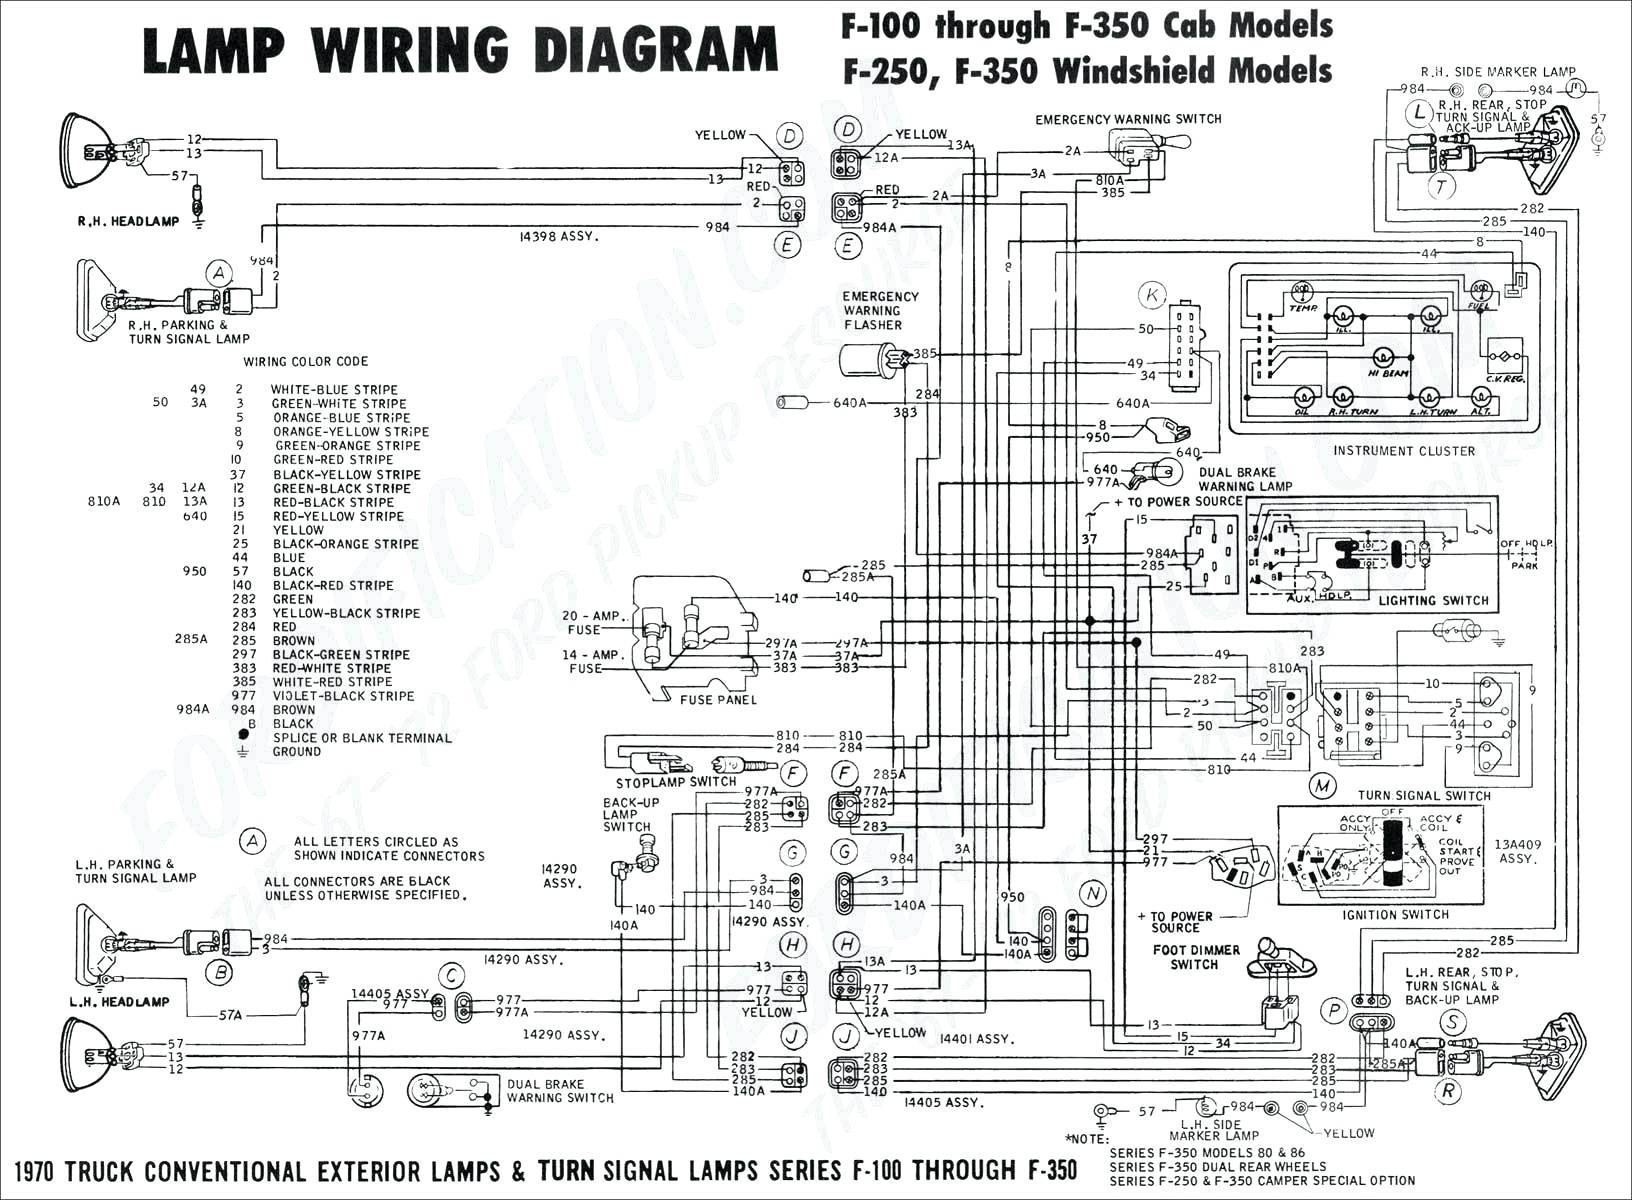 7 3 Powerstroke Parts Diagram 2001 F250 Engine Diagram Experts Wiring Diagram • Of 7 3 Powerstroke Parts Diagram 1997 7 3l Engine Diagram Experts Wiring Diagram •